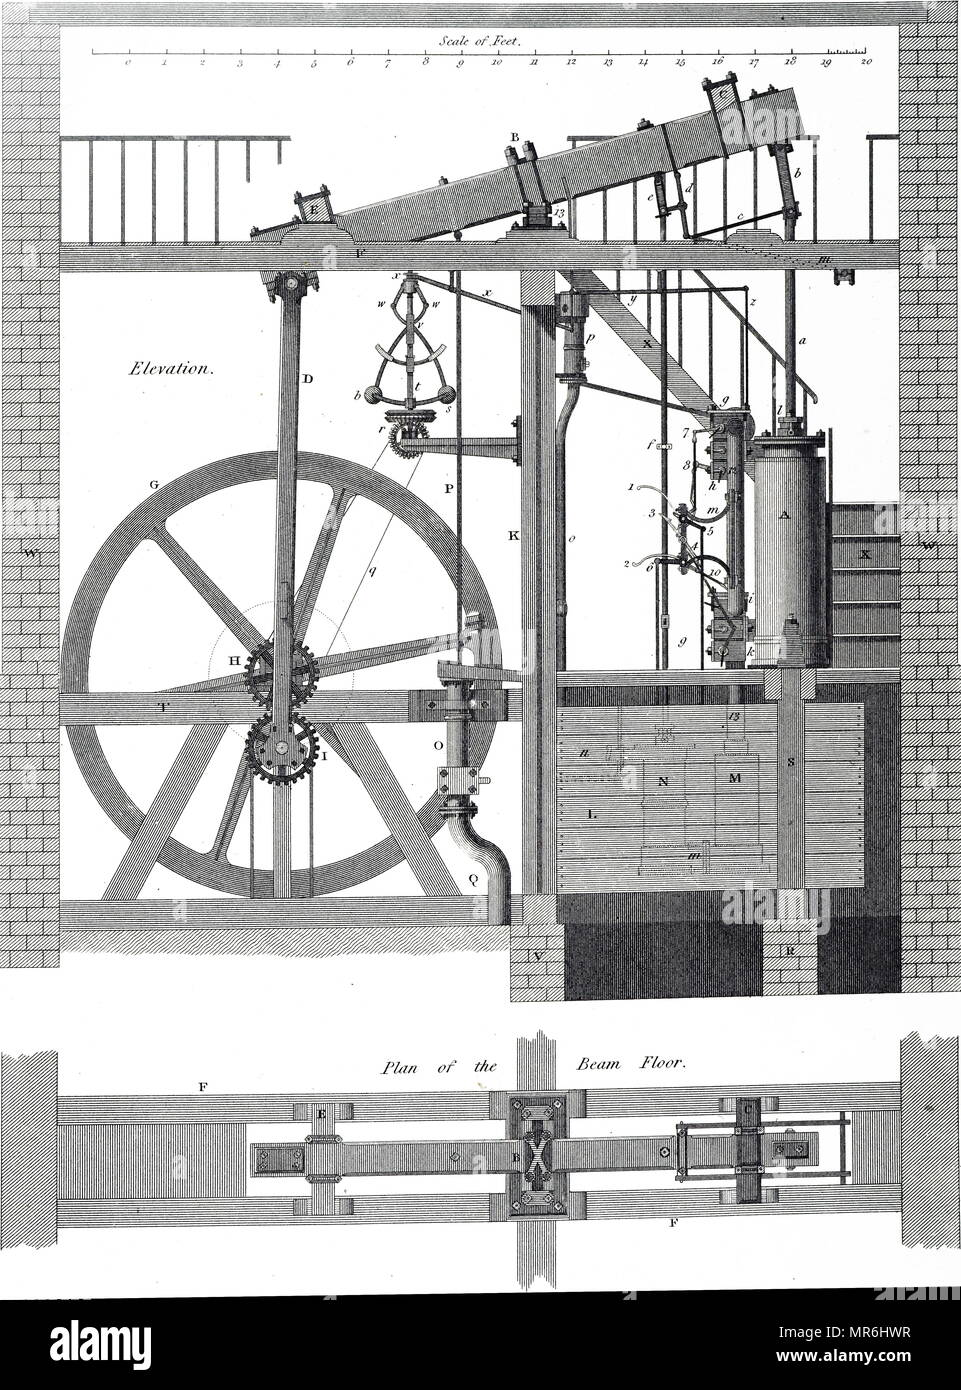 Engraving depicting a double-acting steam engine by James Watt. Watt's steam governor is shown at D. Dated 19th century - Stock Image